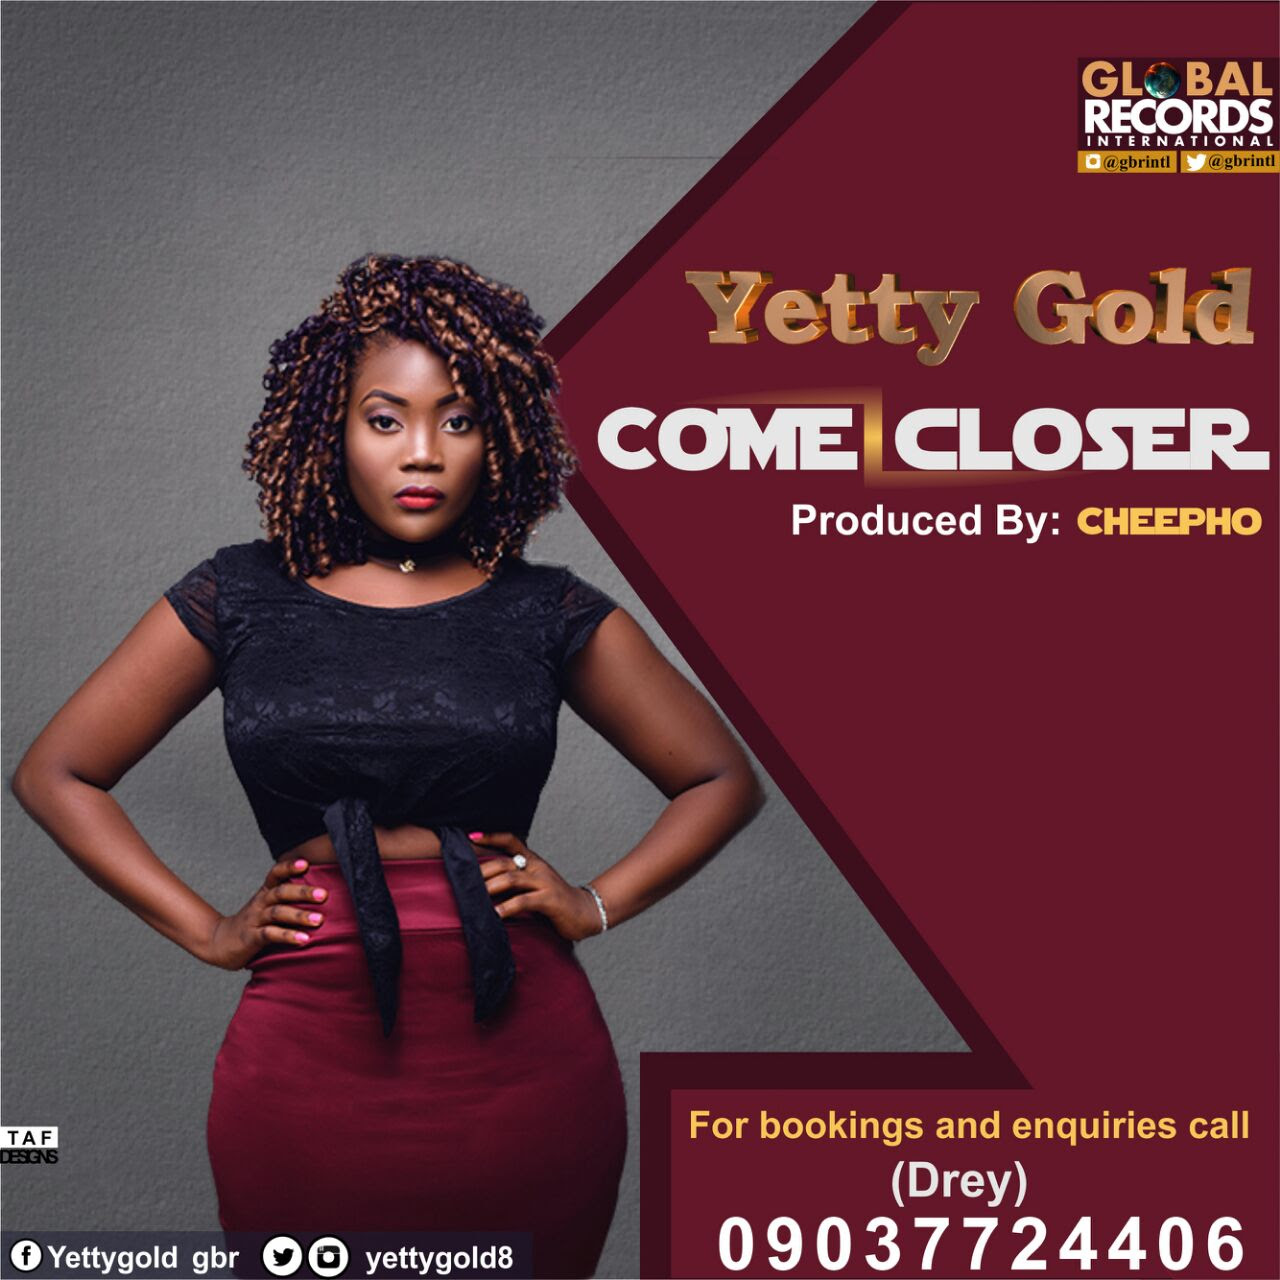 Yetty Gold - Come Closer (prod. Cheepho)